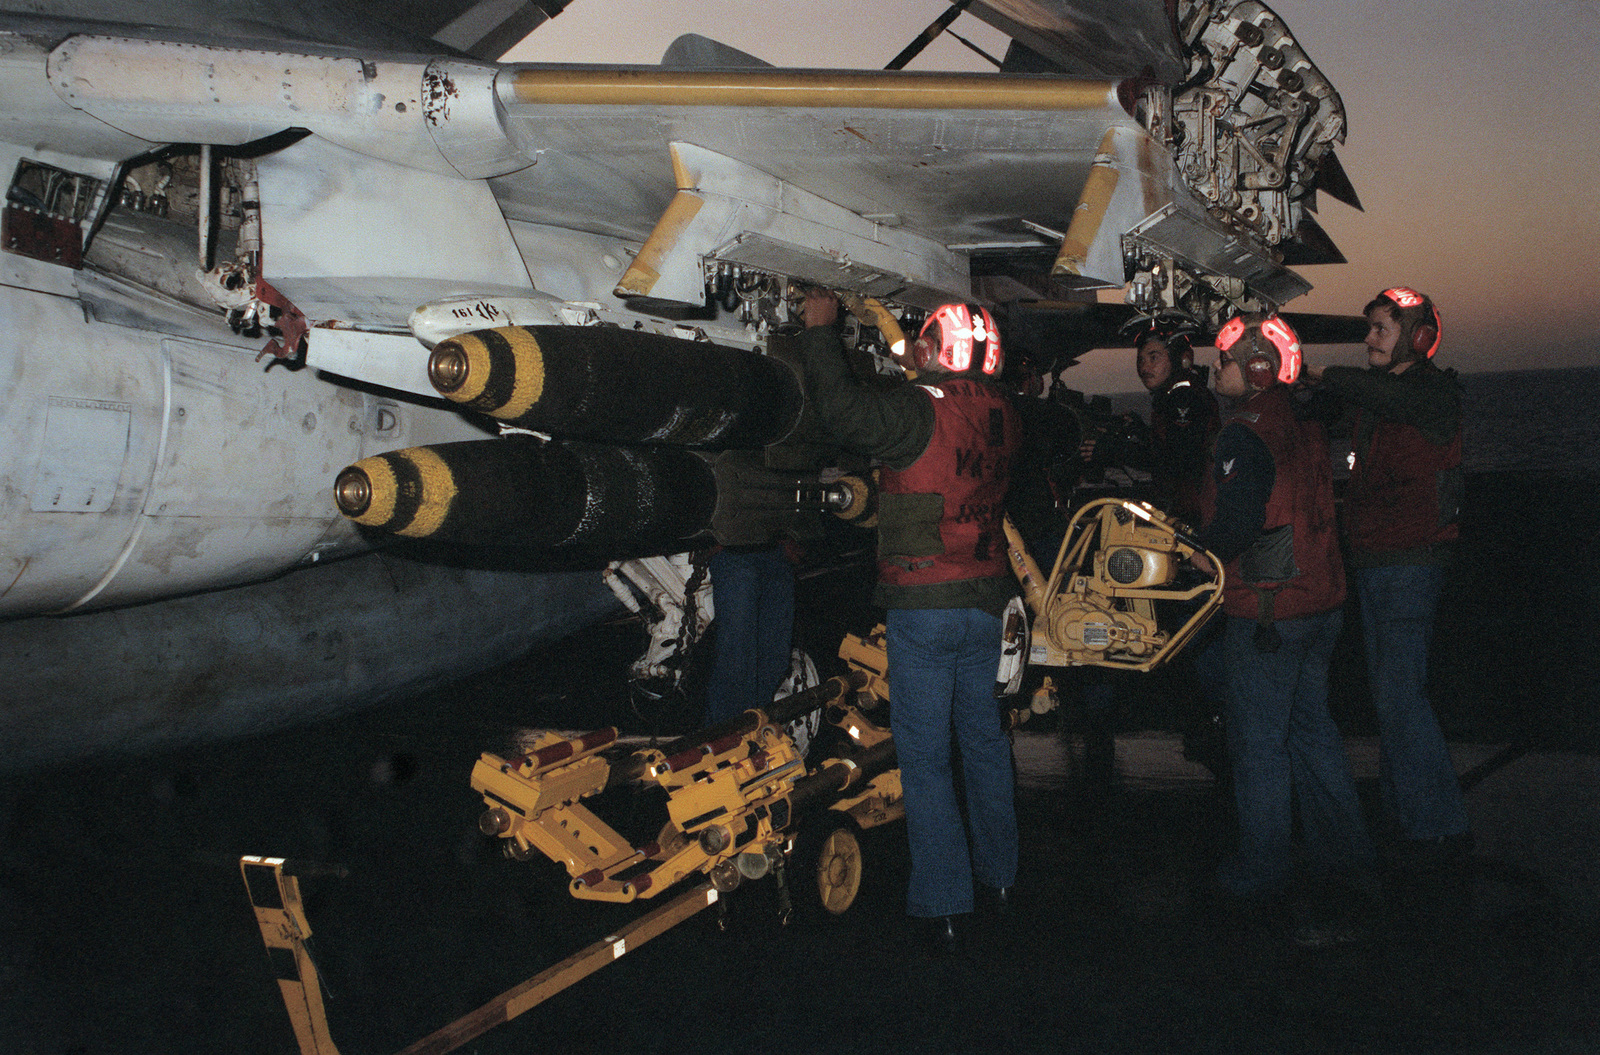 Attack Squadron 65 (VA-65) aviation ordnancemen attach Mark 82 500-pound retarded delivery bombs to the wing pylons of an A-6E Intruder aircraft during flight operations aboard the nuclear-powered aircraft carrier USS DWIGHT D. EISENHOWER (CVN 69)